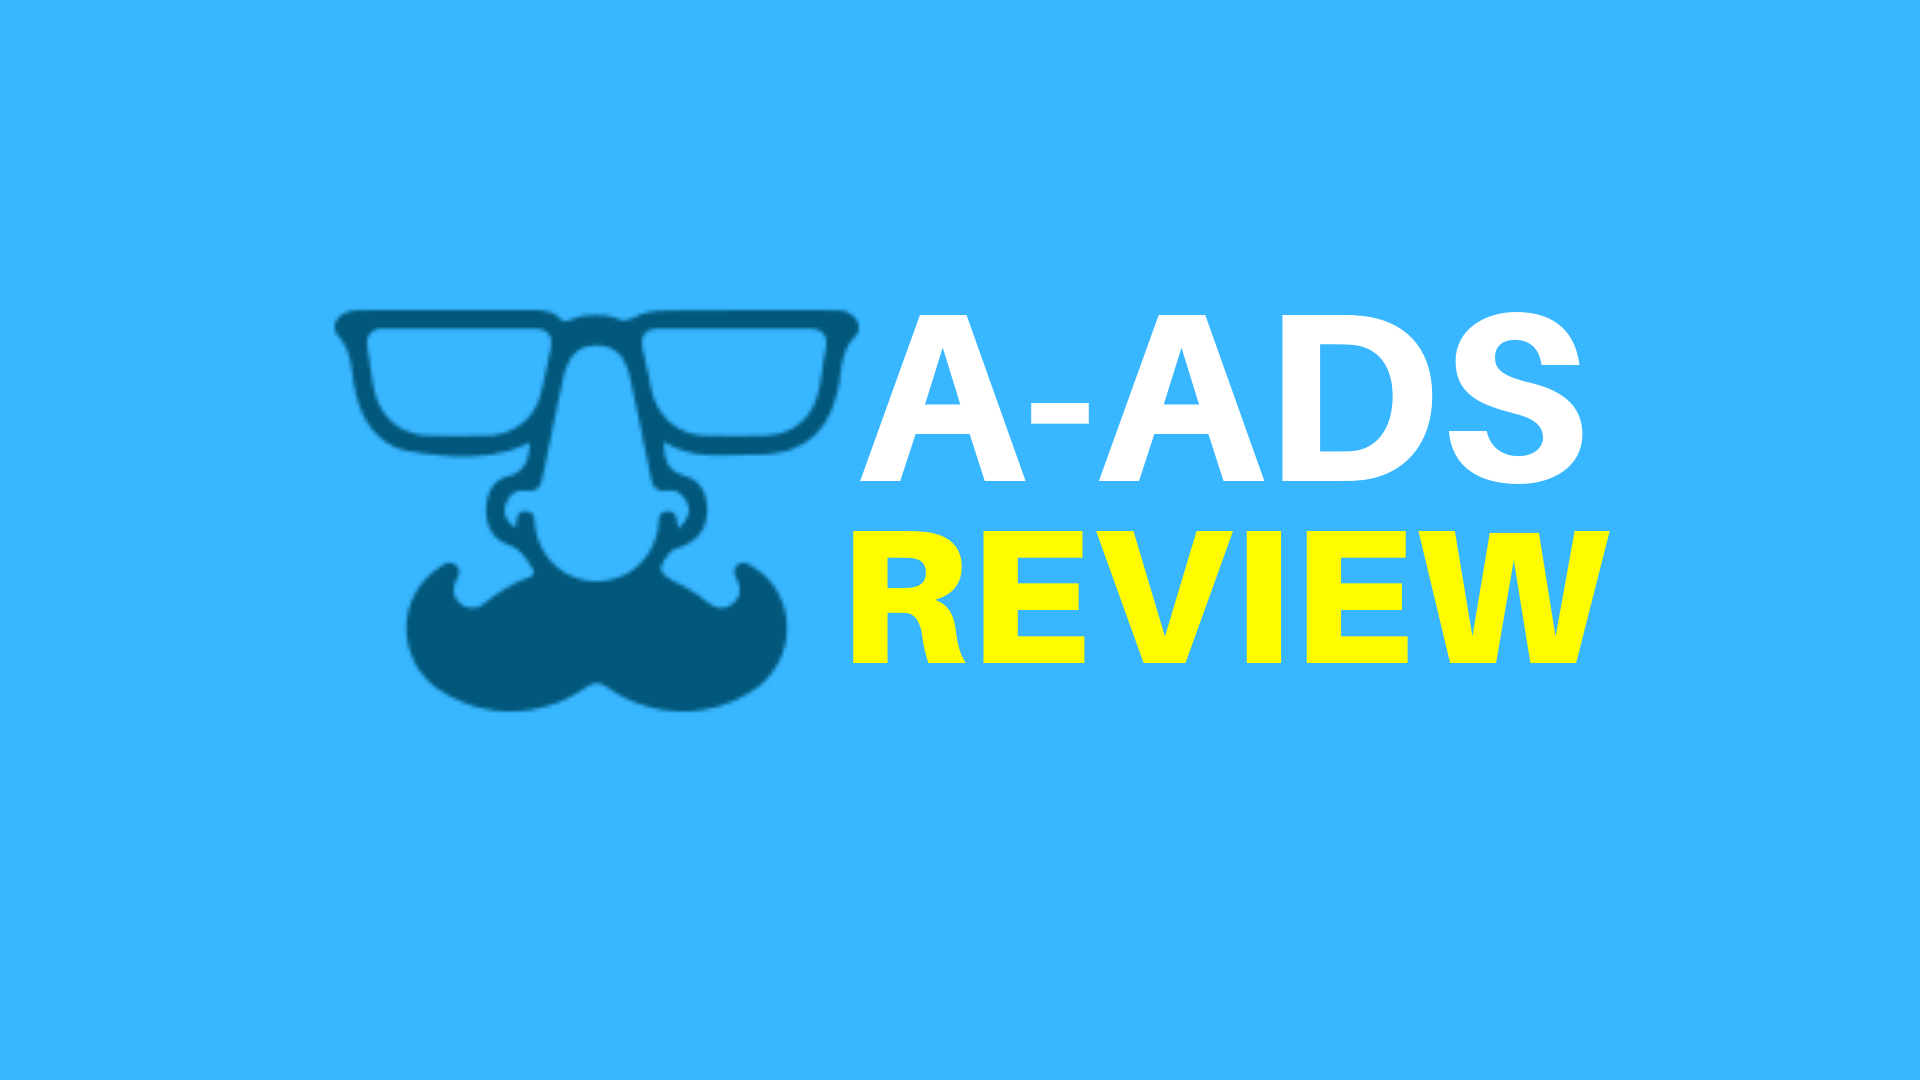 A-ADS-Review